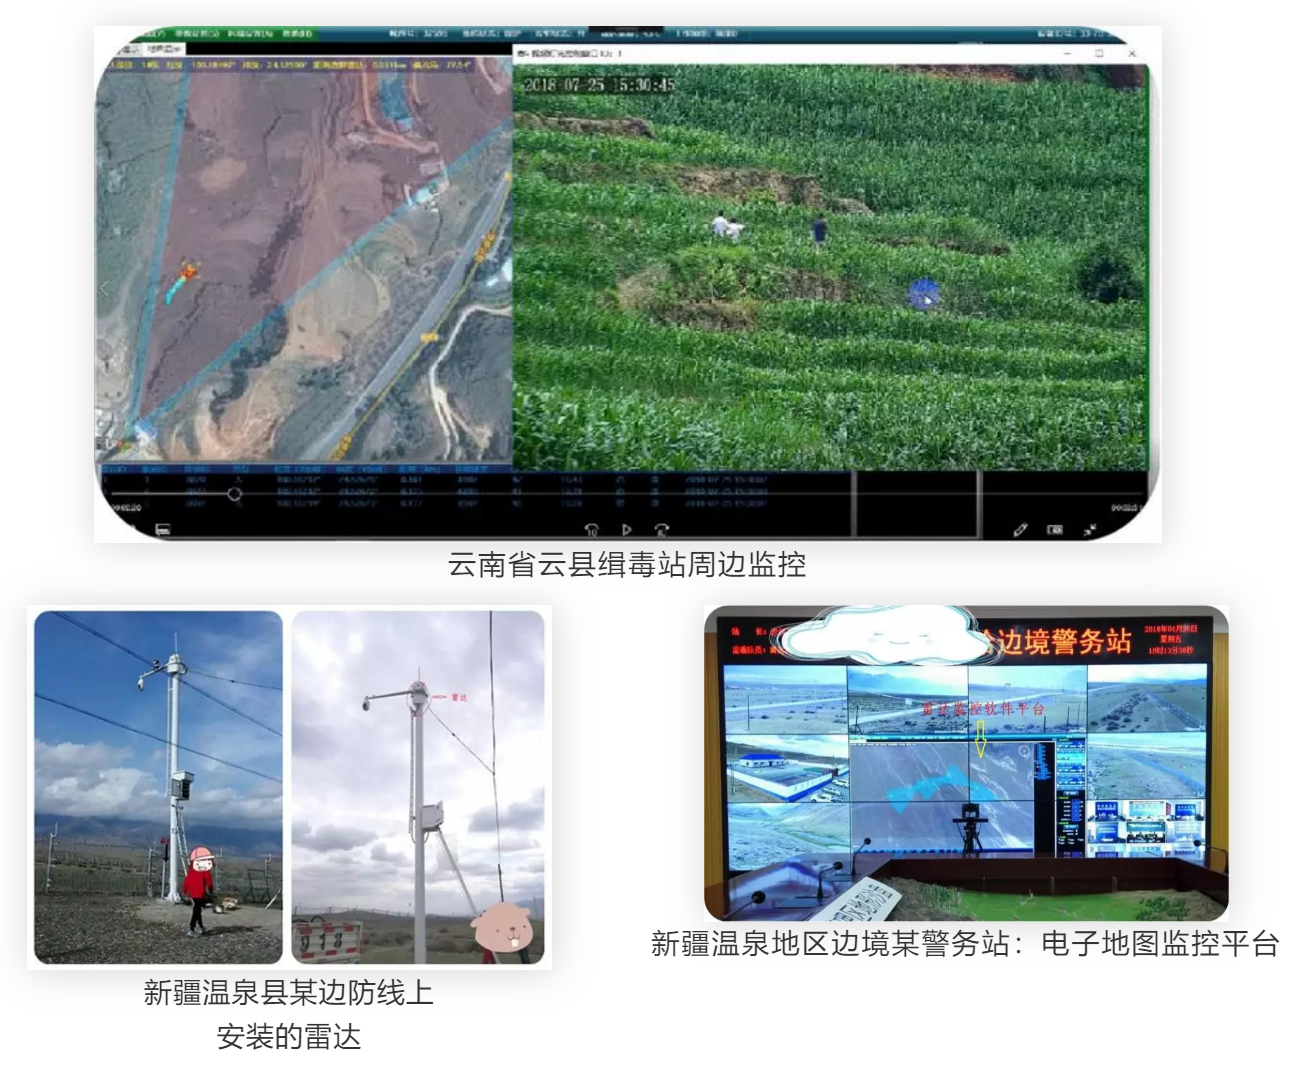 http://service.chinaports.com/hdd_chinaports/news_files/news_img_1583235133777.png